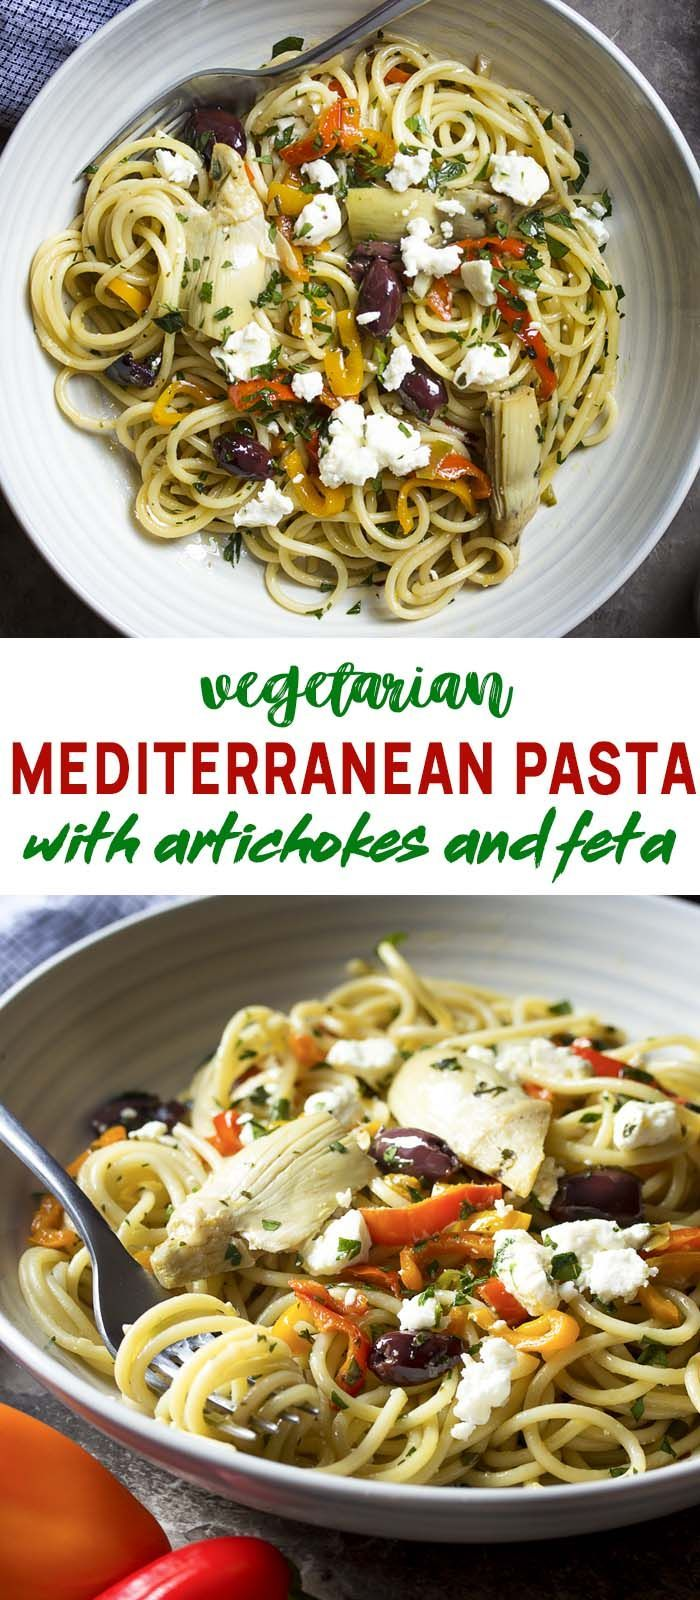 Vegetarian Mediterranean Pasta with Feta and Artichokes - Just a Little Bit of Bacon